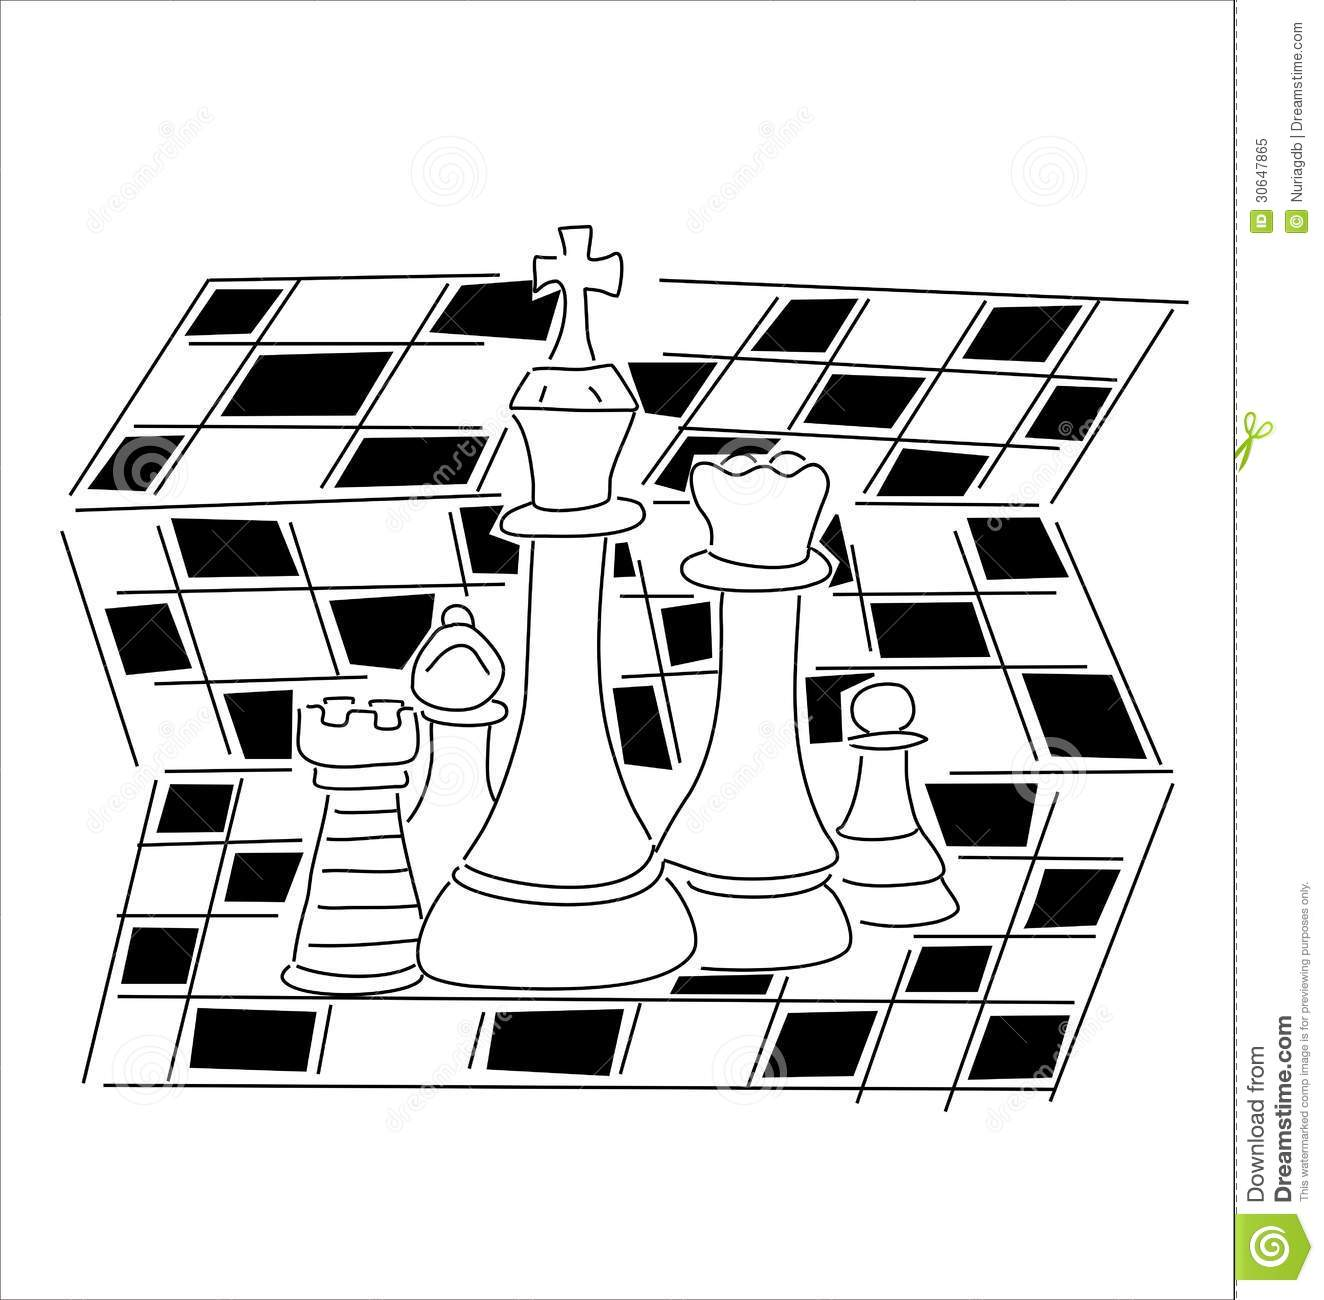 Royalty Free Stock Photo Chess Pieces Black White Board Image30647865 on chess vector graphics